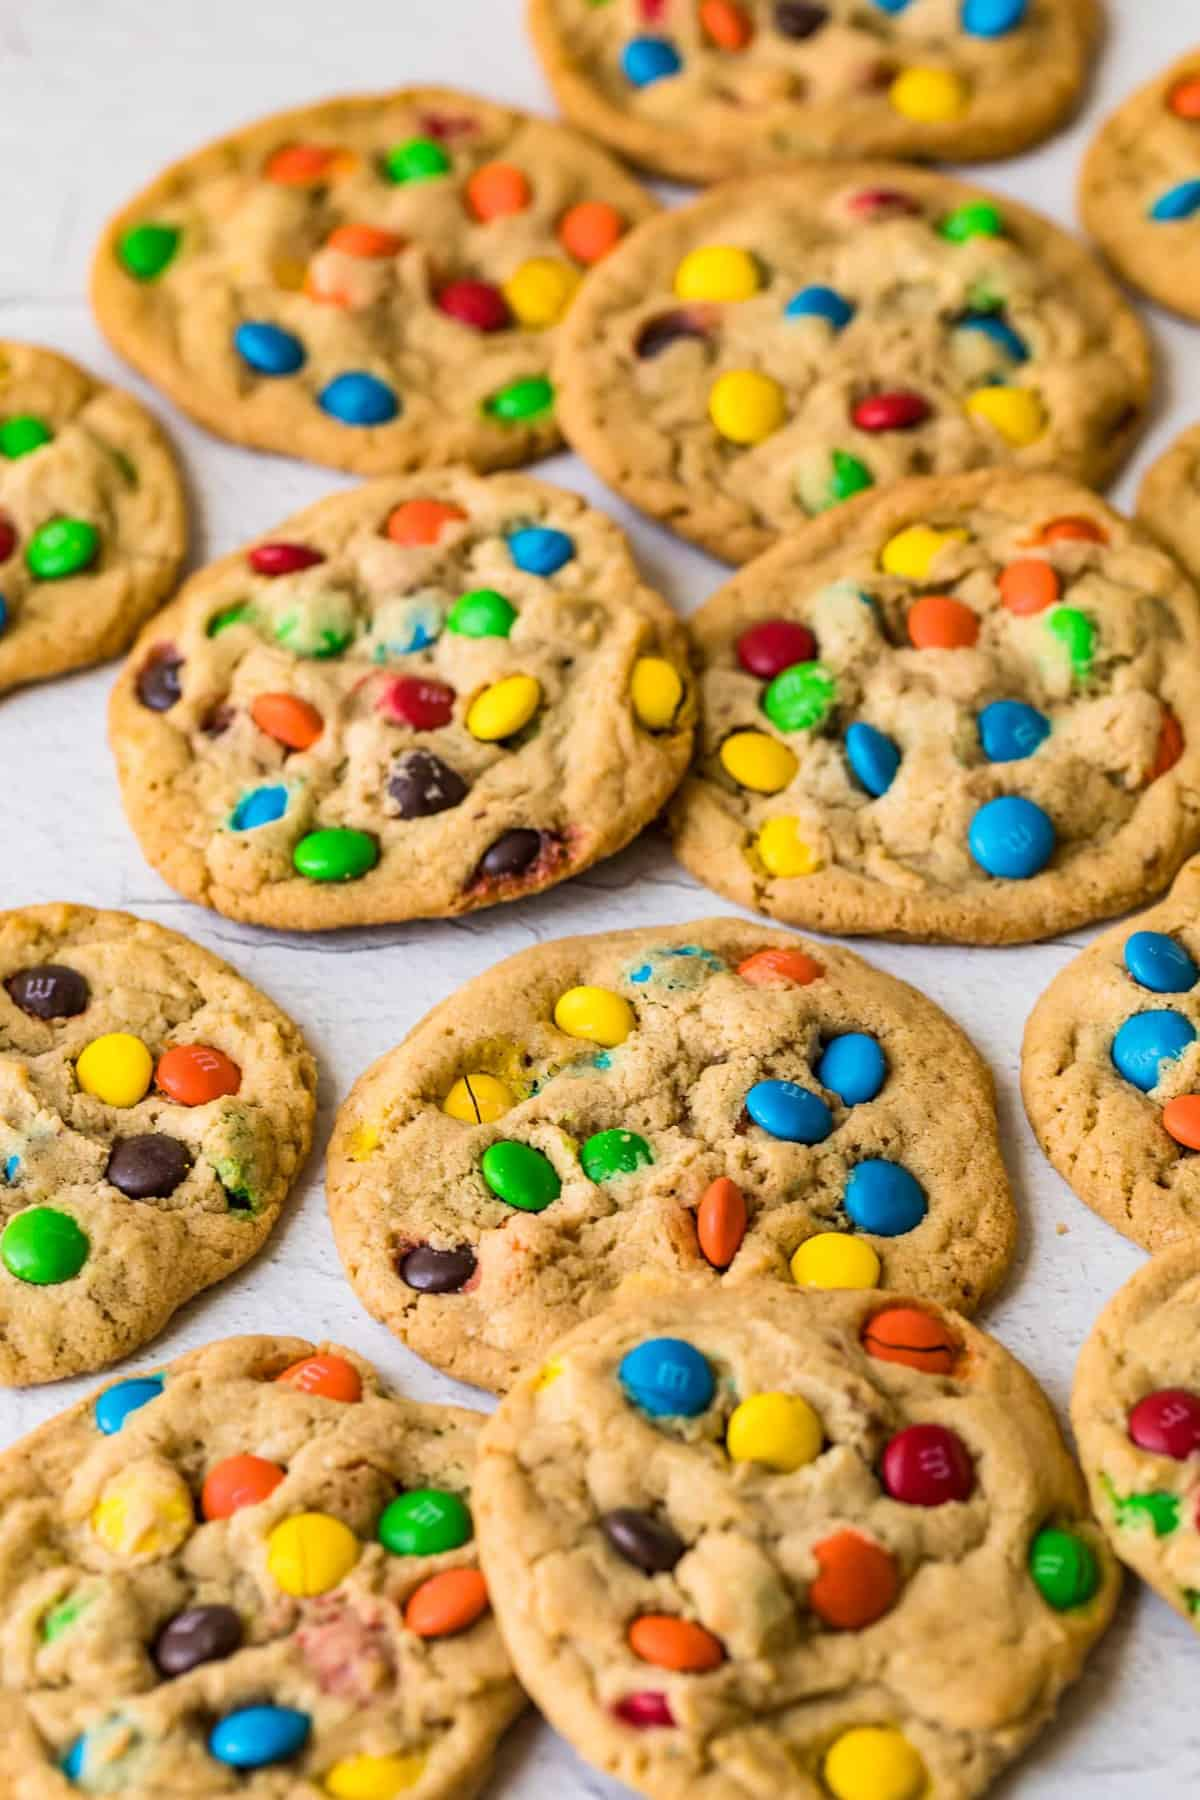 M&M Cookies just out of the oven